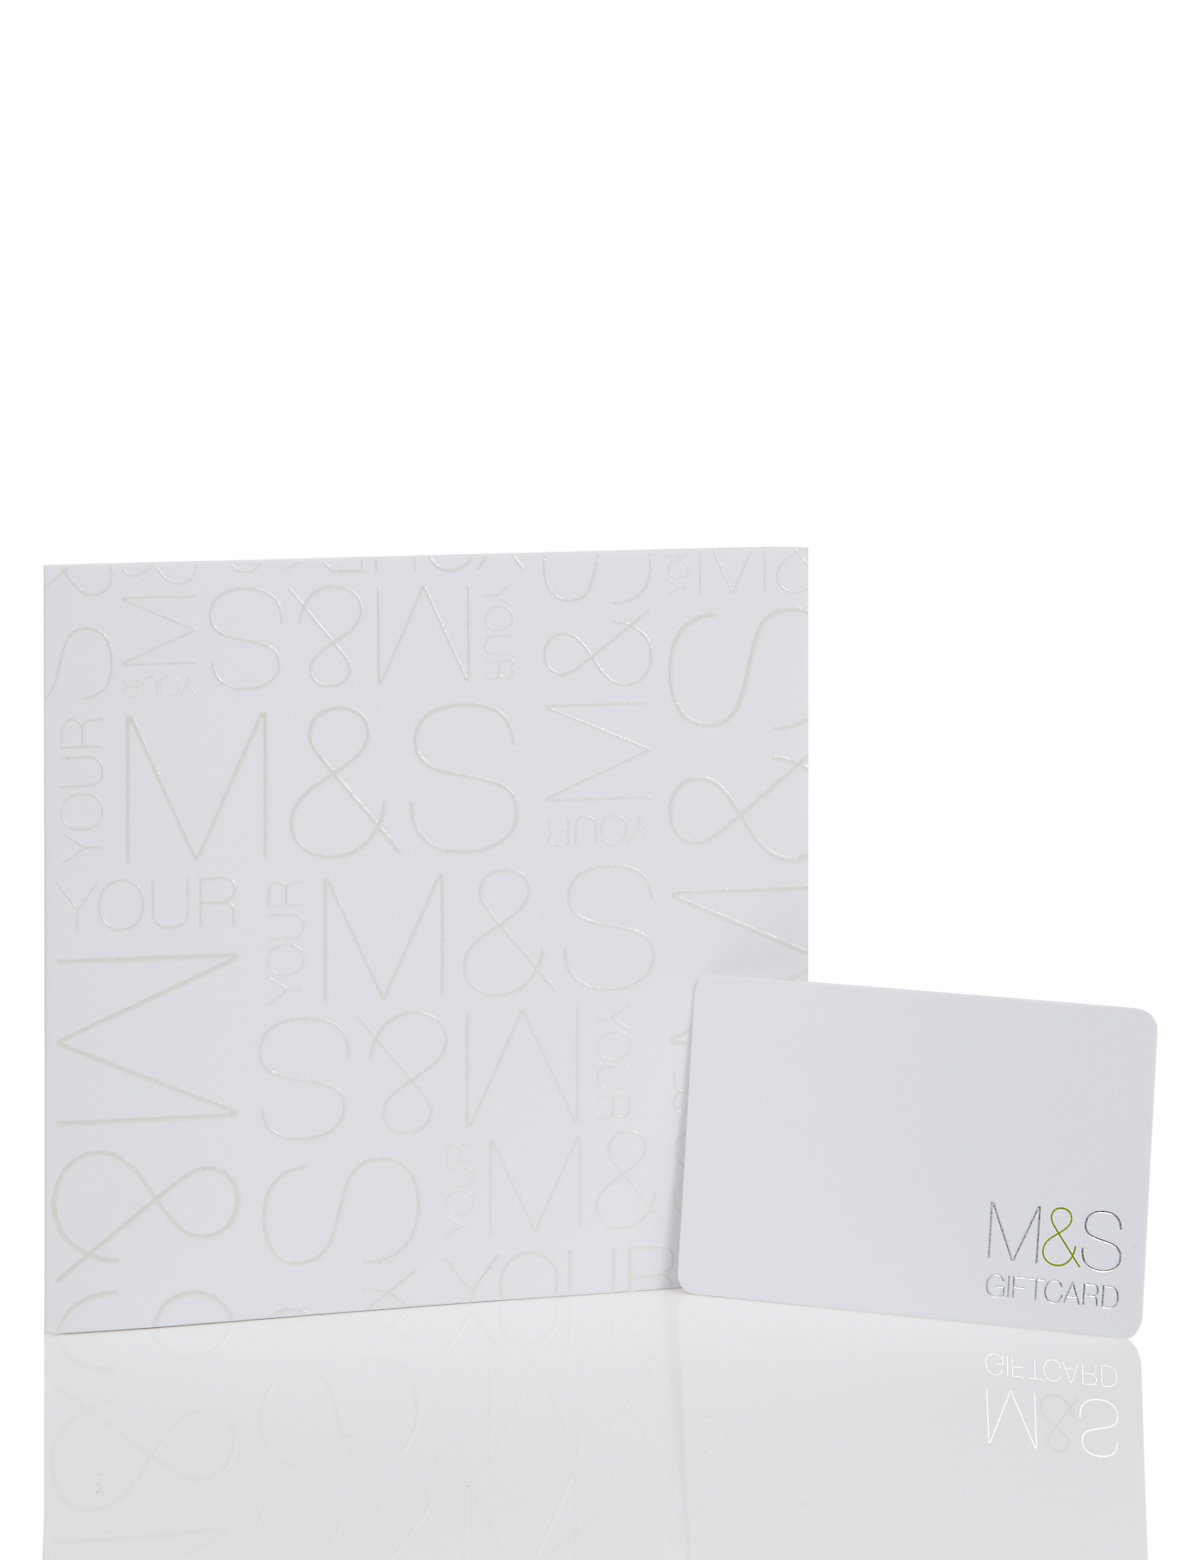 M&S Logo Gift Card